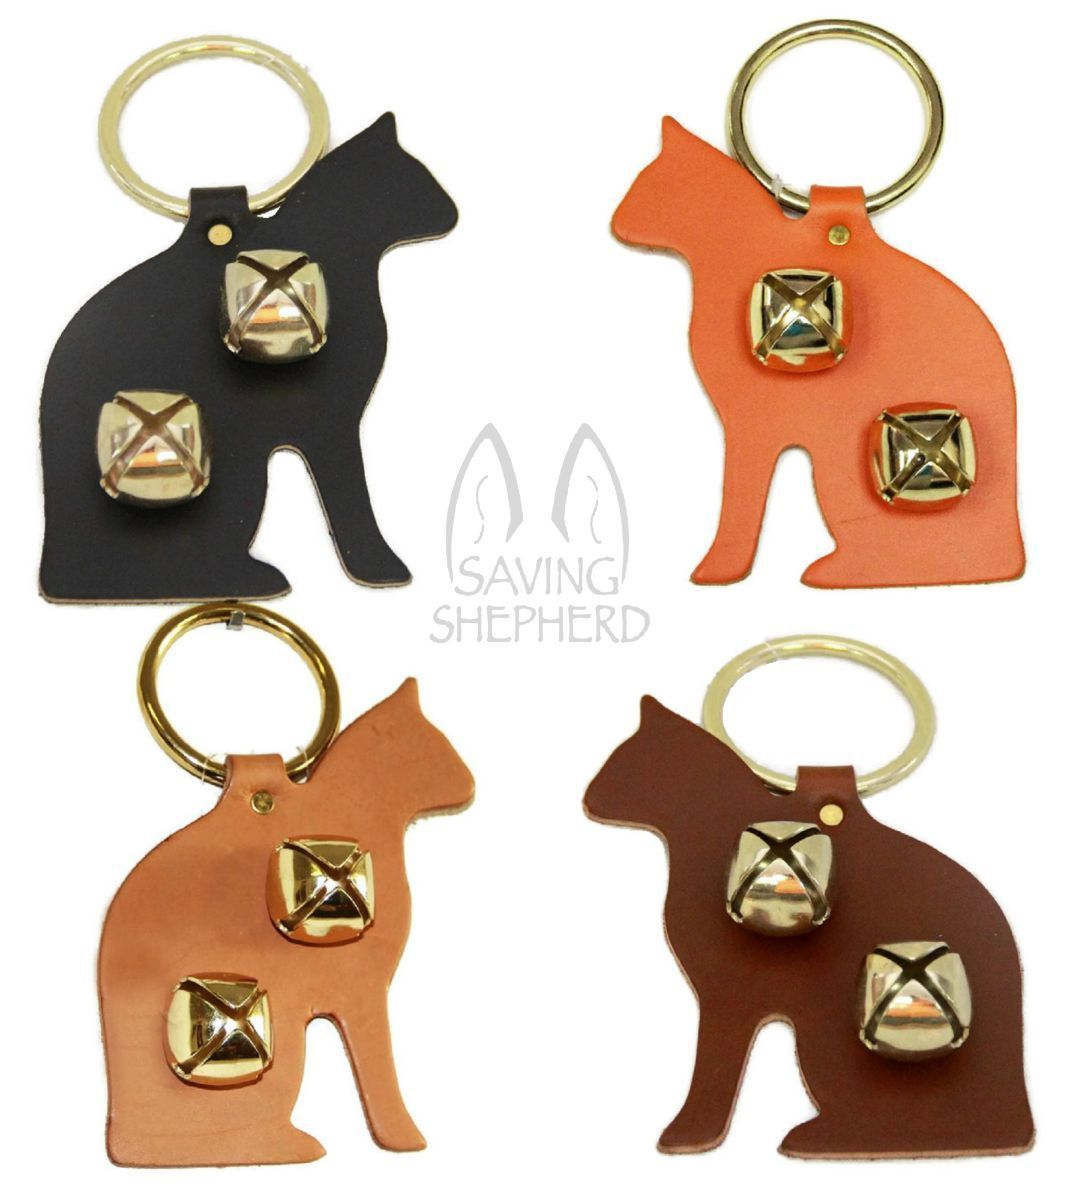 ORANGE CAT LEATHER DOOR CHIME w/ SLEIGH BELLS - Amish Handmade in the USA